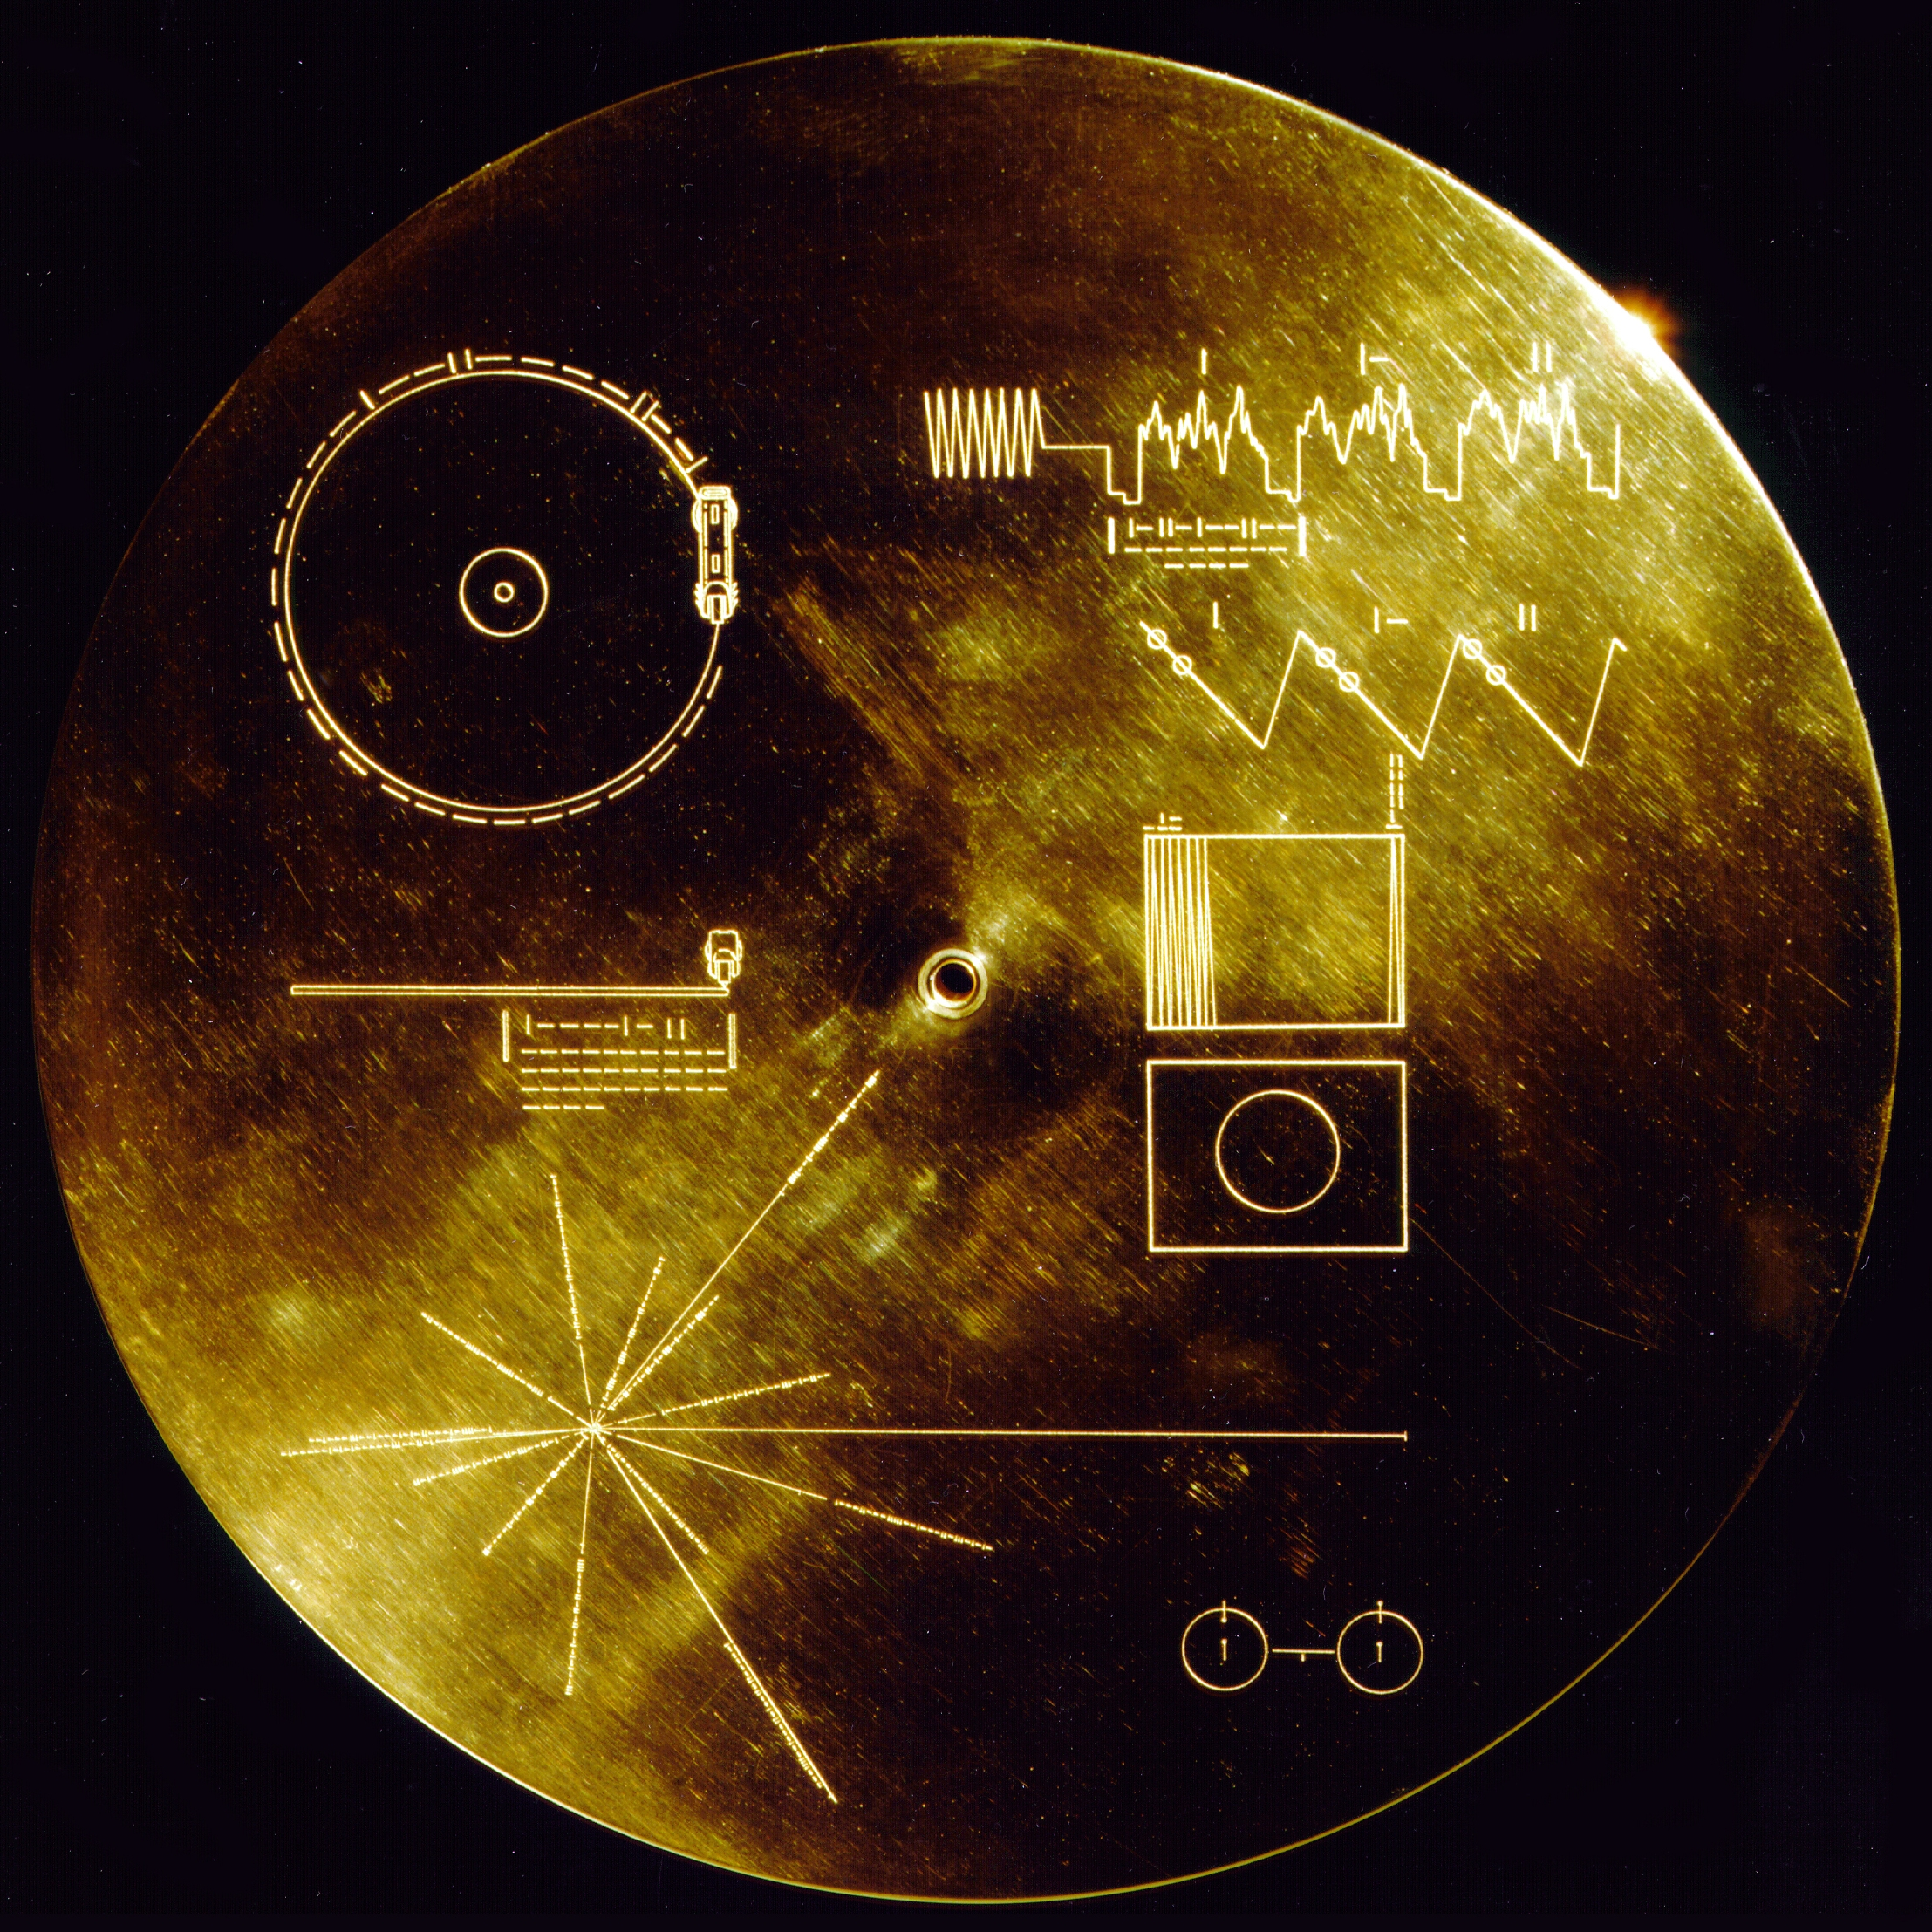 Voyager Golden Record (1977).